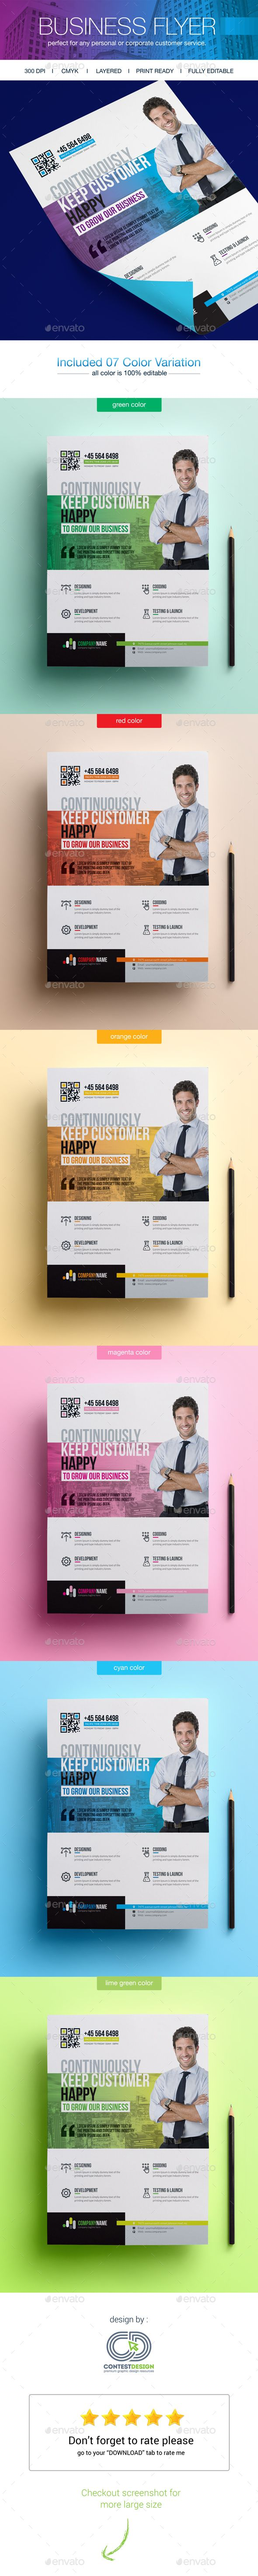 Corporate Business Flyers  — PSD Template #flyer printing #flyers template • Download ➝ https://graphicriver.net/item/corporate-business-flyers/18413963?ref=pxcr